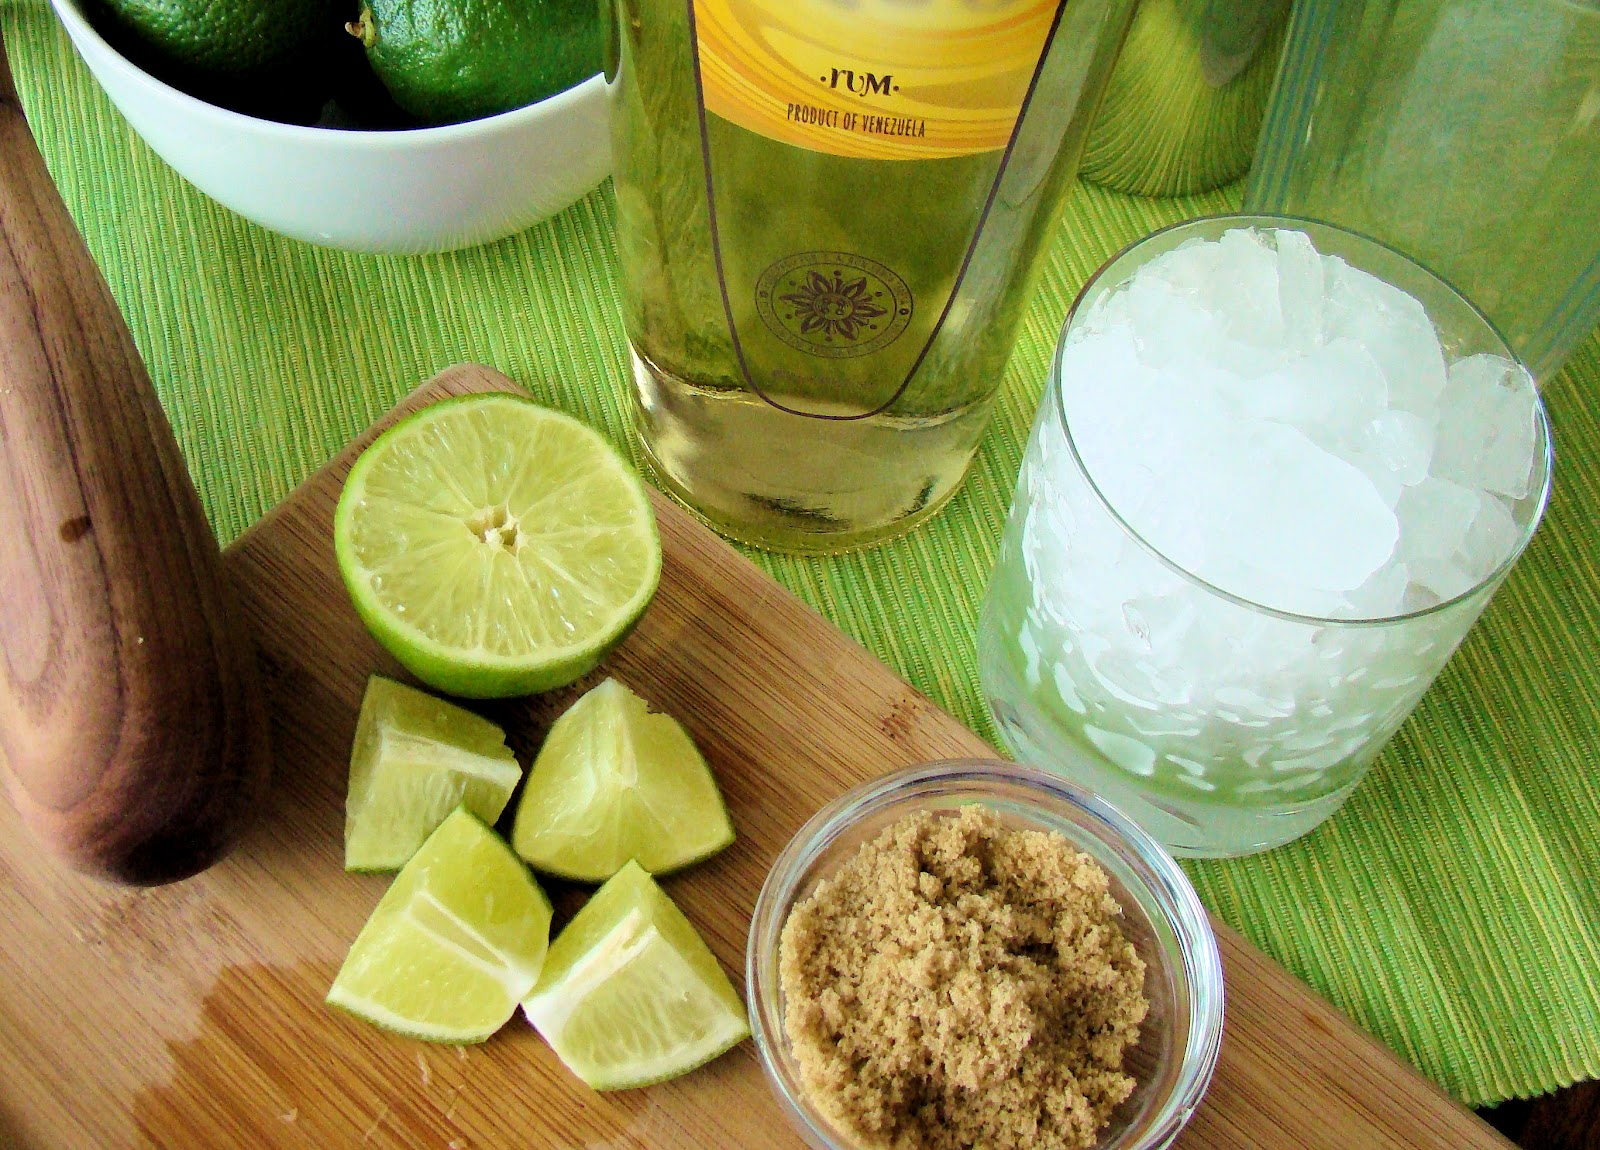 Savoir Faire: Rumpirinha, the Rum Version of the Classic Caipirinha